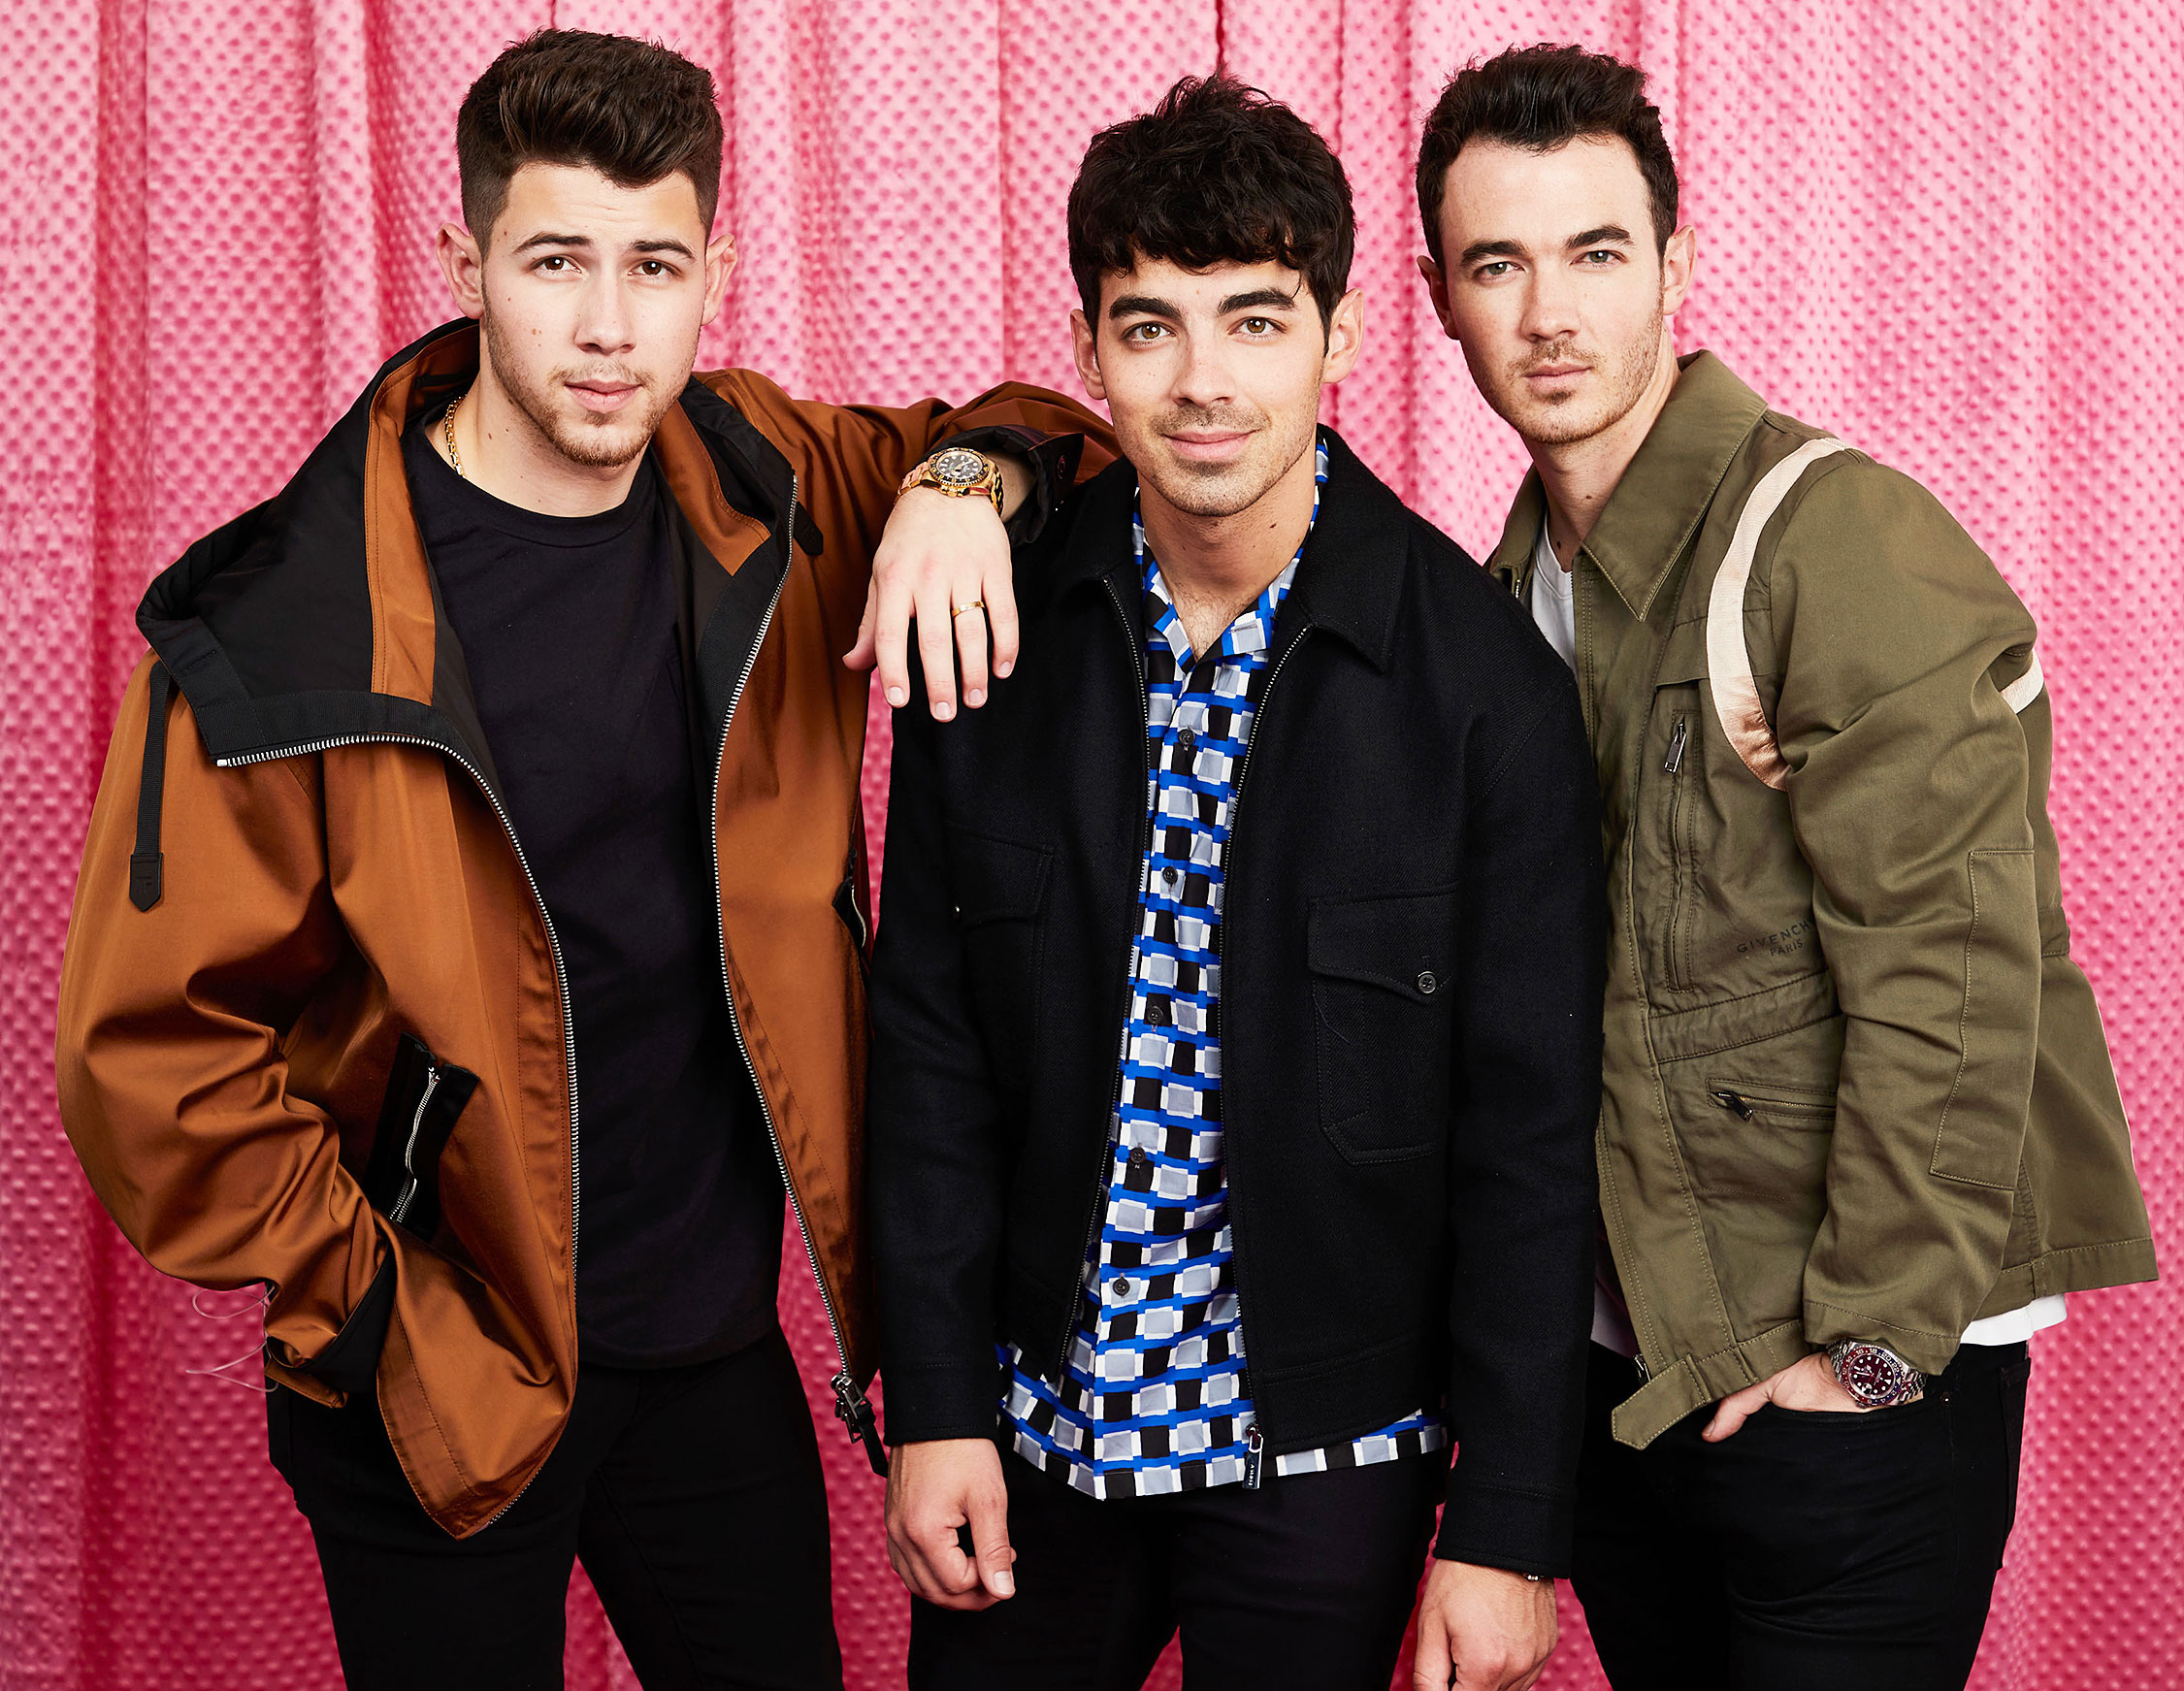 Jonas Brothers' Haircare Regimen and Grooming Secrets: More Info